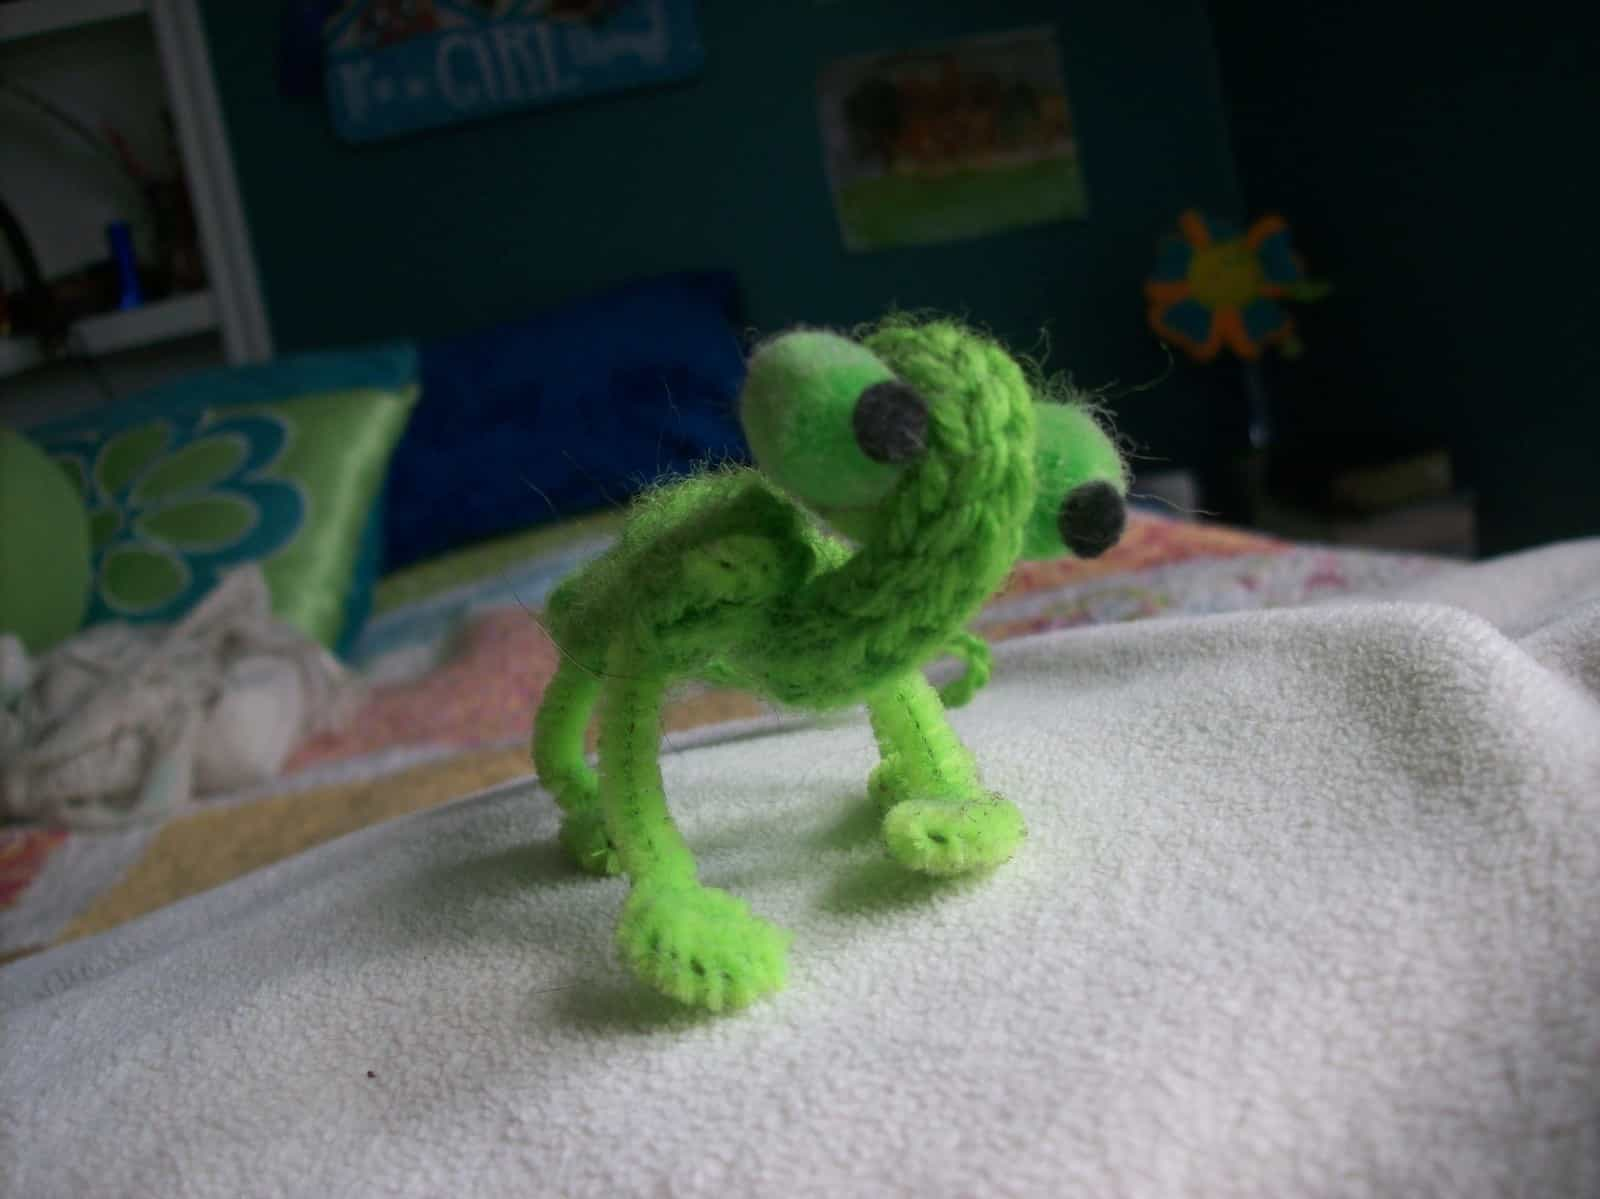 Corking and pipe cleaner lizard